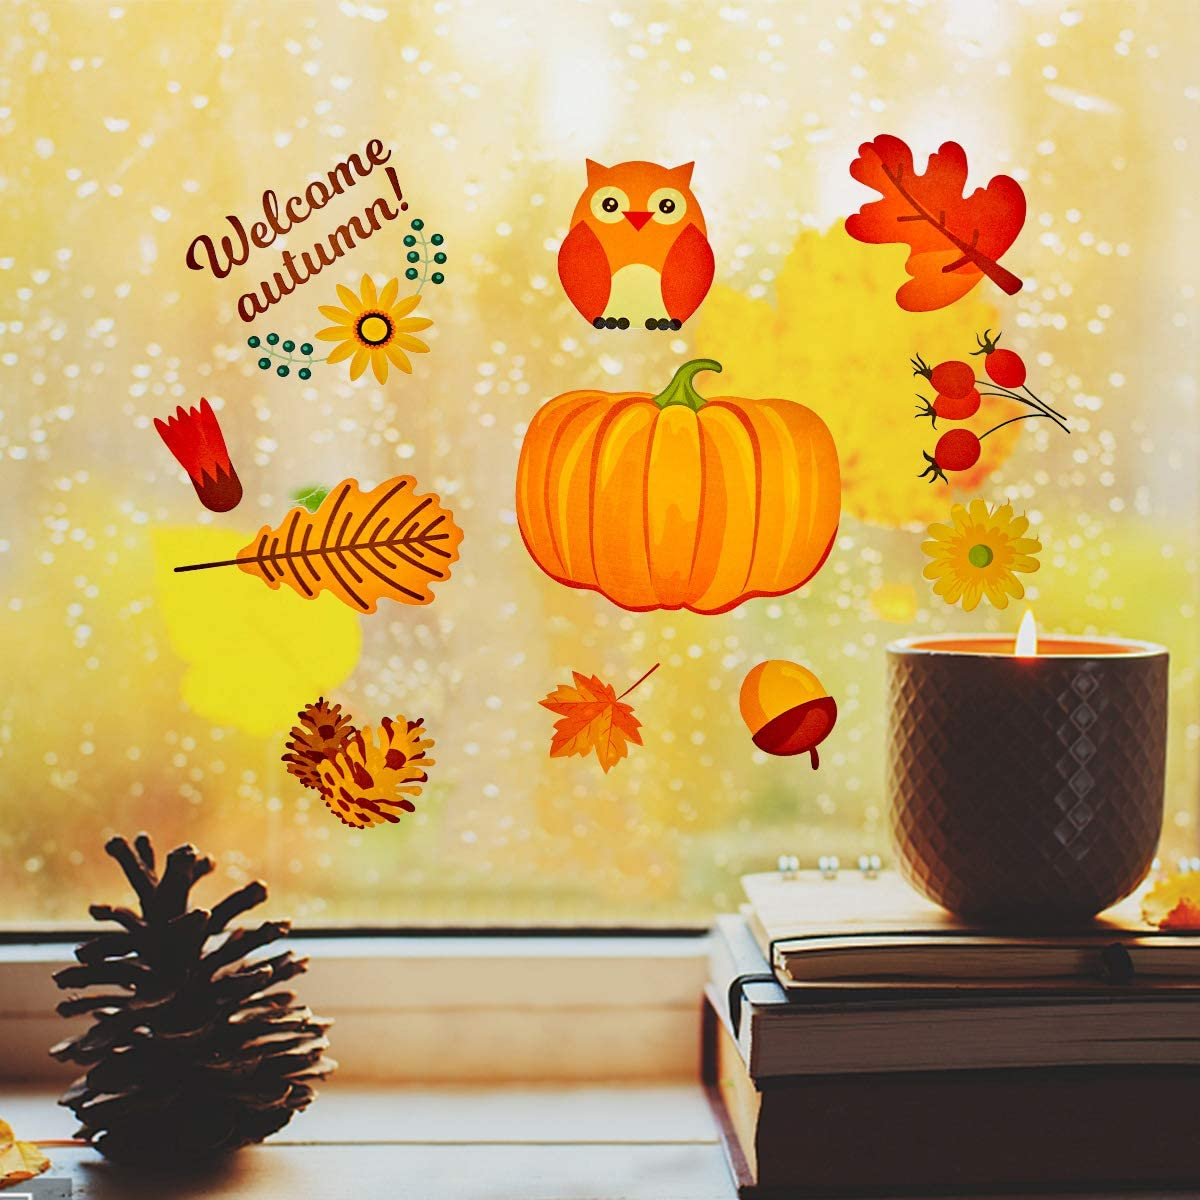 Autumn Party Atmosphere 144 Pcs 12 Sheets Fall Thanksgiving Window Stickers Non-Adhesive Static Cling Pumpkin Maple Leaf Window Cling for Decoration DIY Family Fun Kids Window Stickers